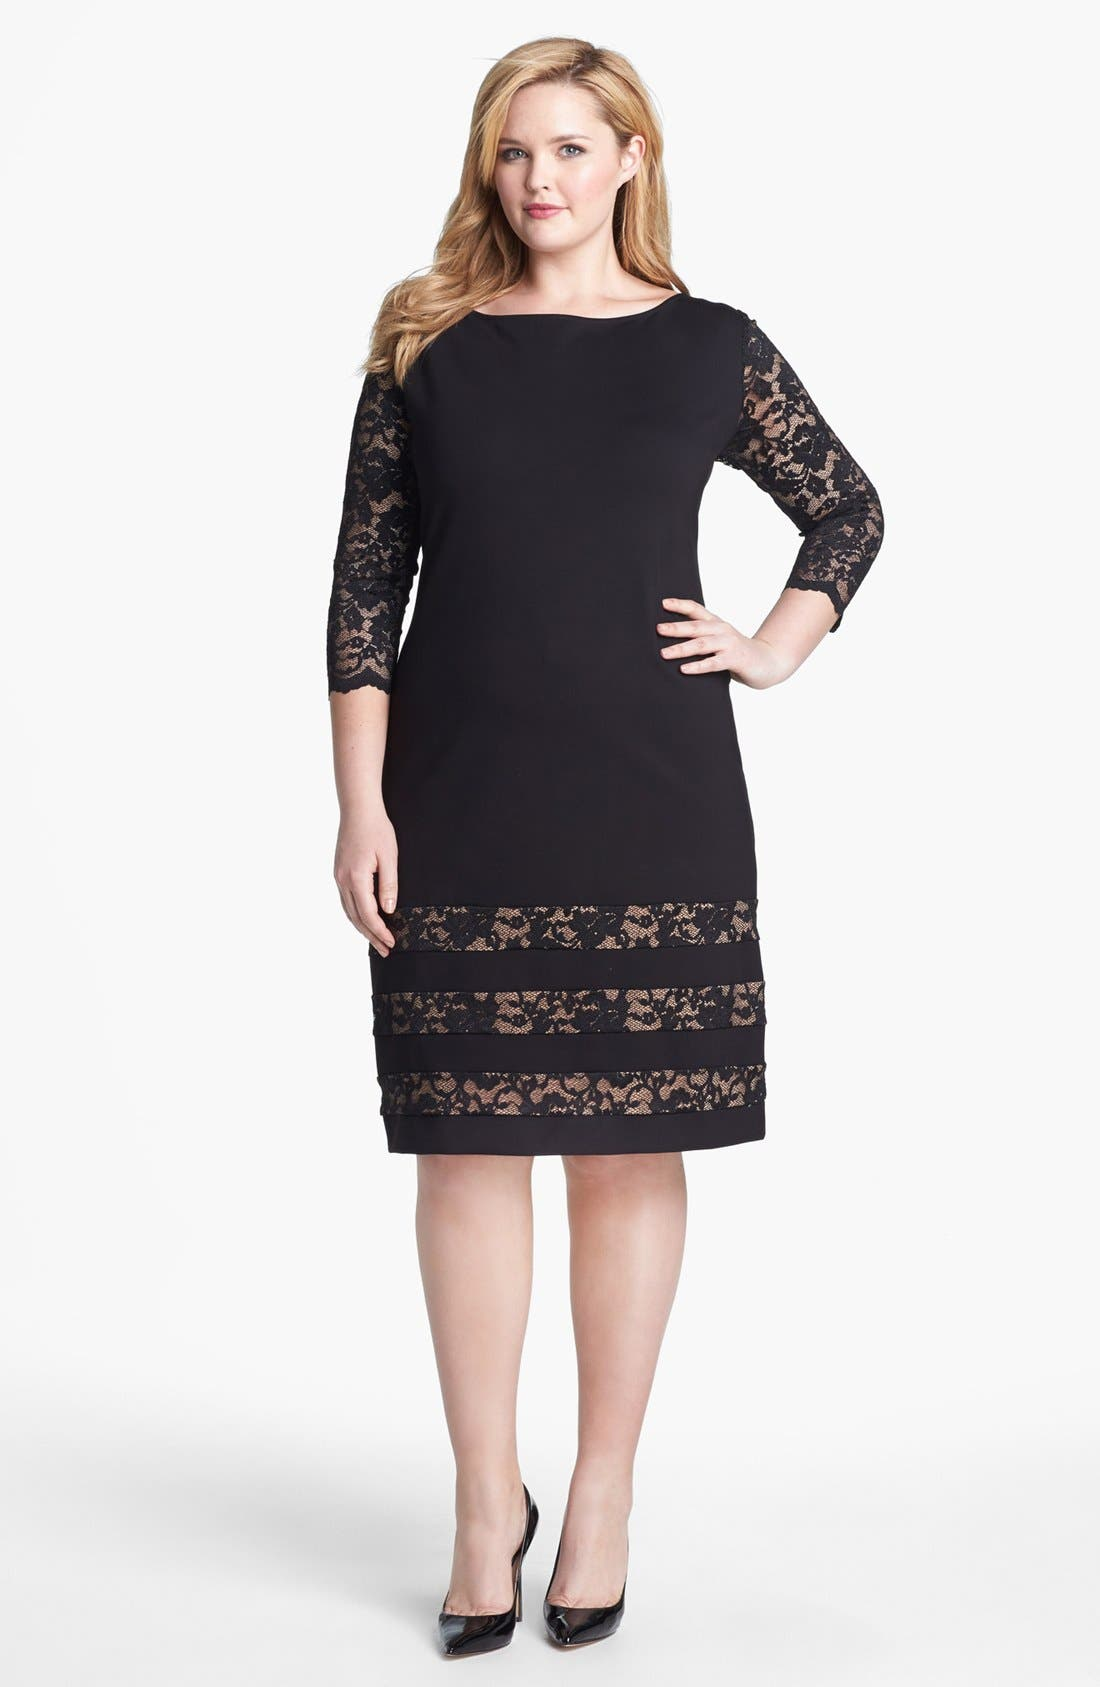 Main Image - ABS by Allen Schwartz Lace Detail Sheath Dress (Plus Size)